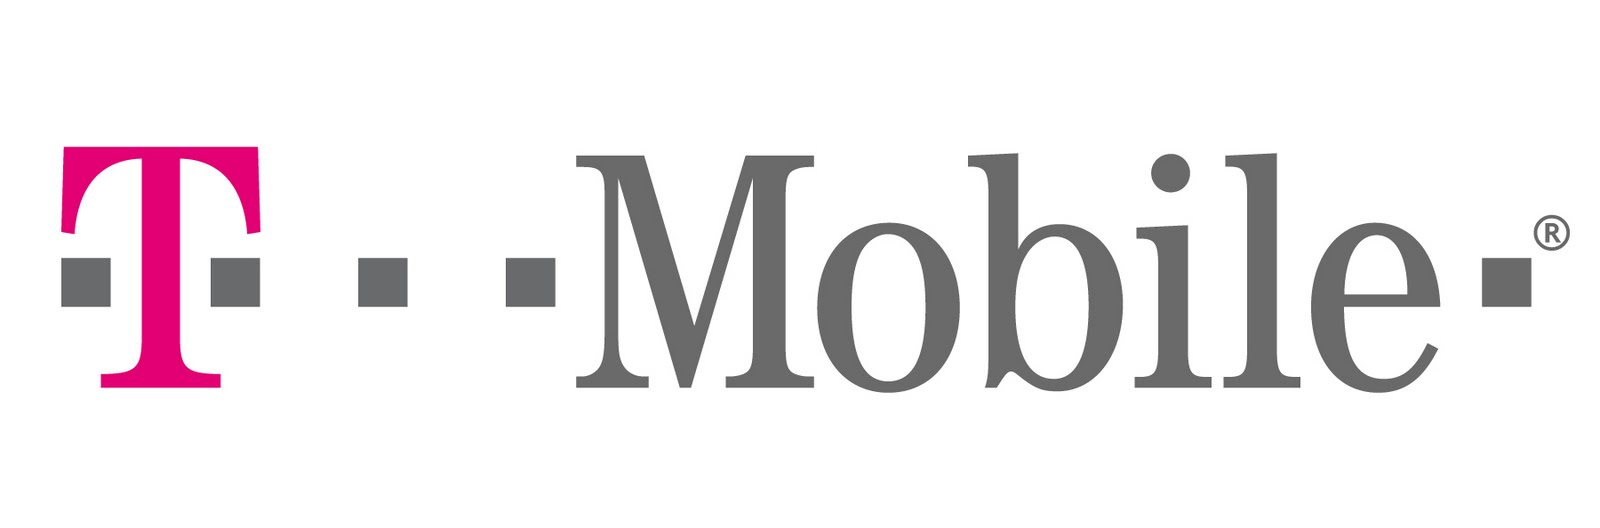 T-Mobile Exec: We Are Not Going To Get The iPhone 5 This Year